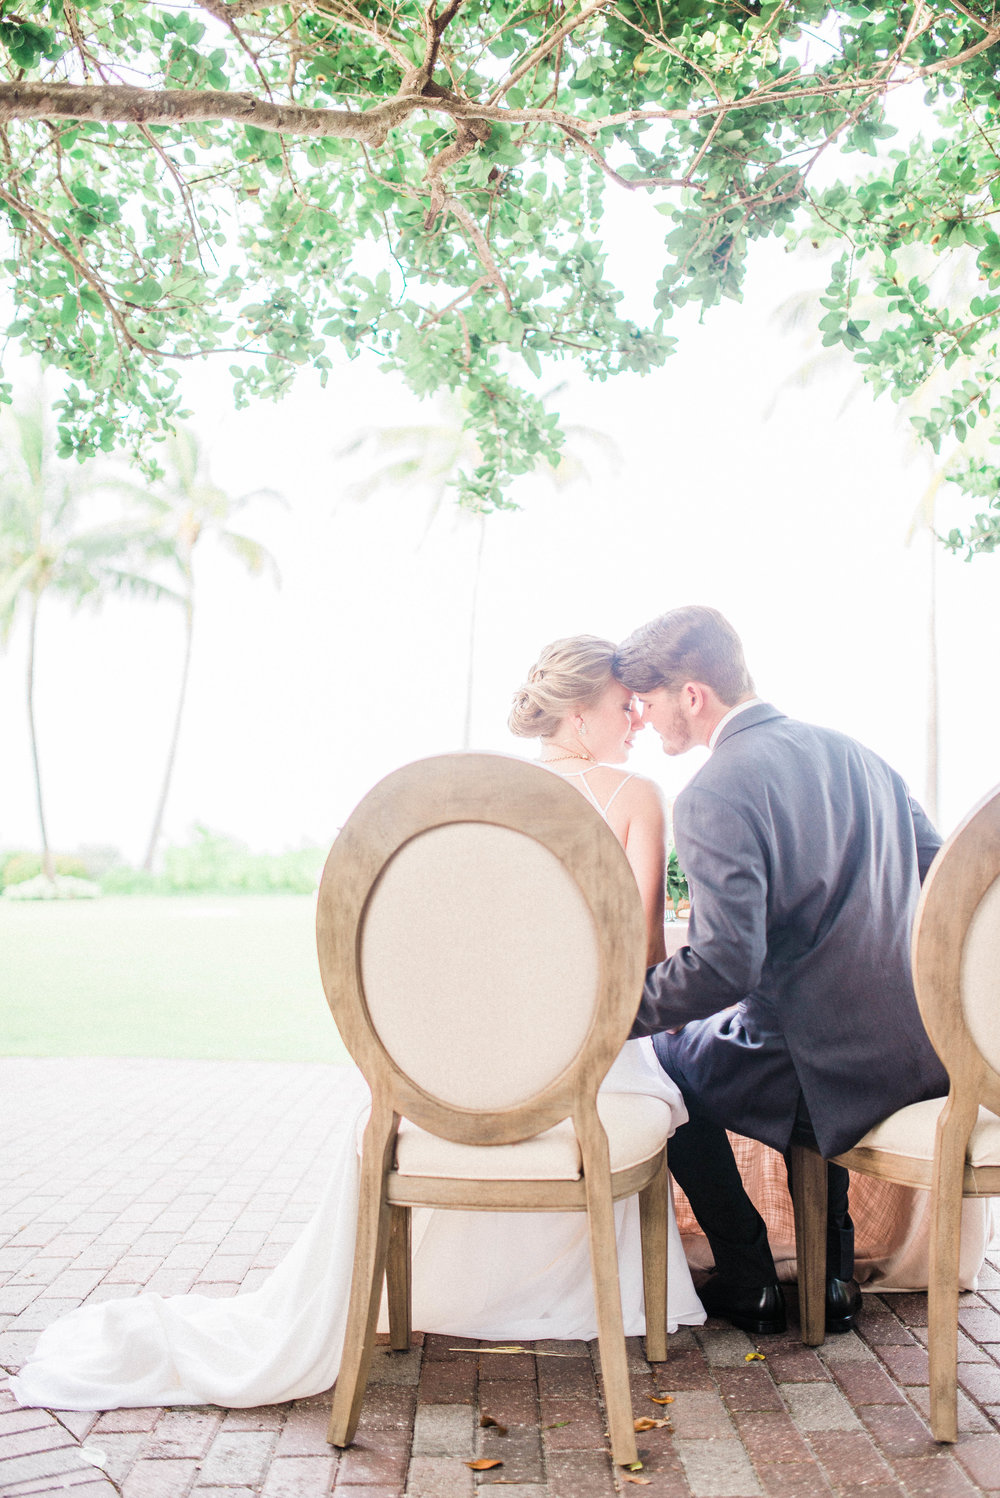 SWFL, Sanibel Island, Captiva Island, Estero, Naples, Bonita Springs, Fort Myers Photography | Destination Wedding Photographers